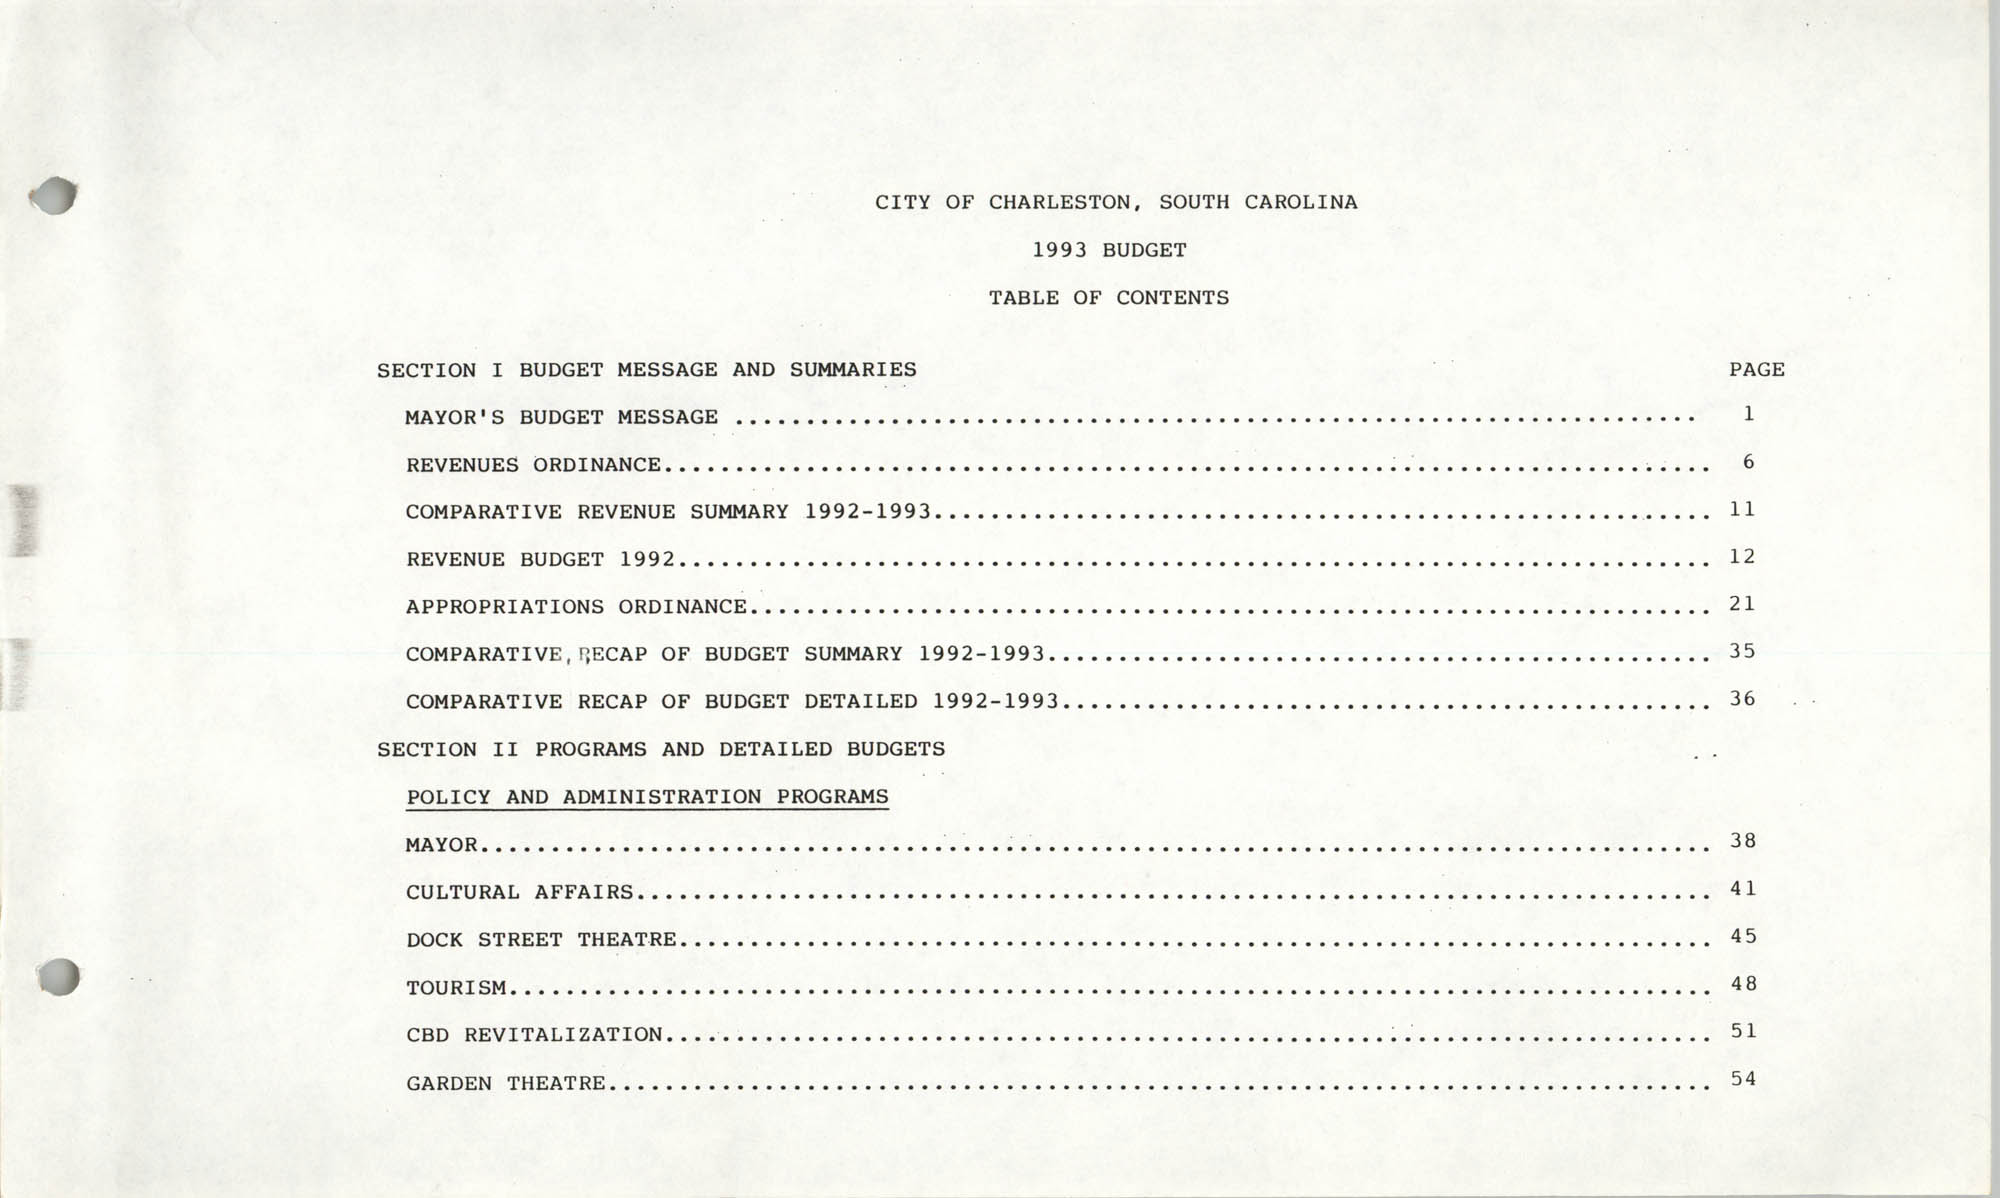 The City Council of Charleston, South Carolina, 1993 Budget, Table of Contents Page 1